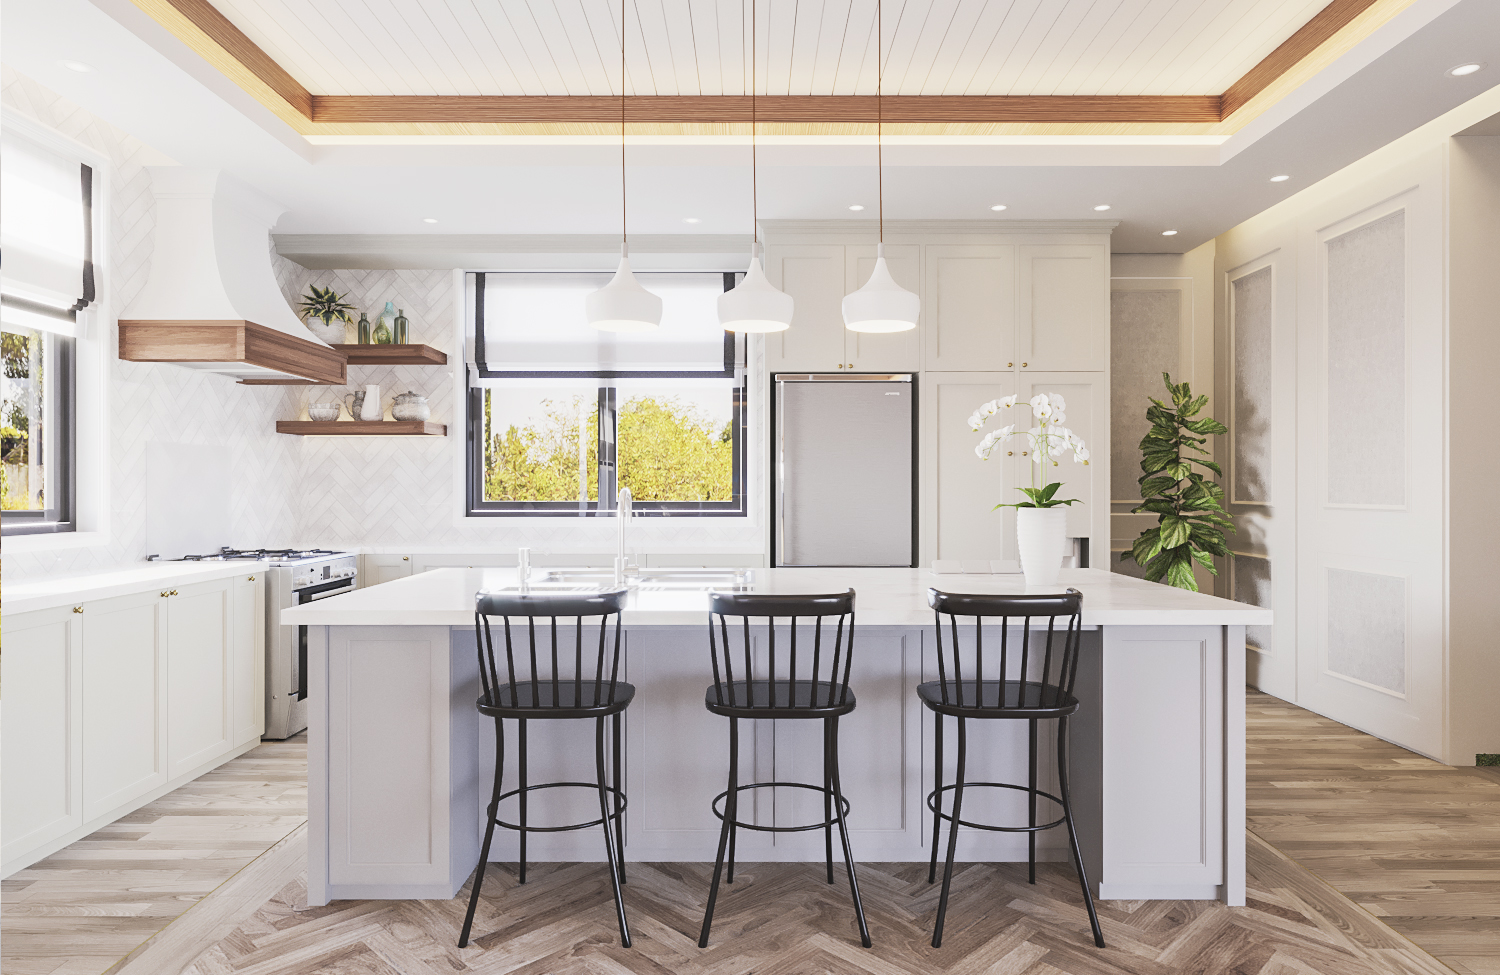 S House - Pantry (Look 2)